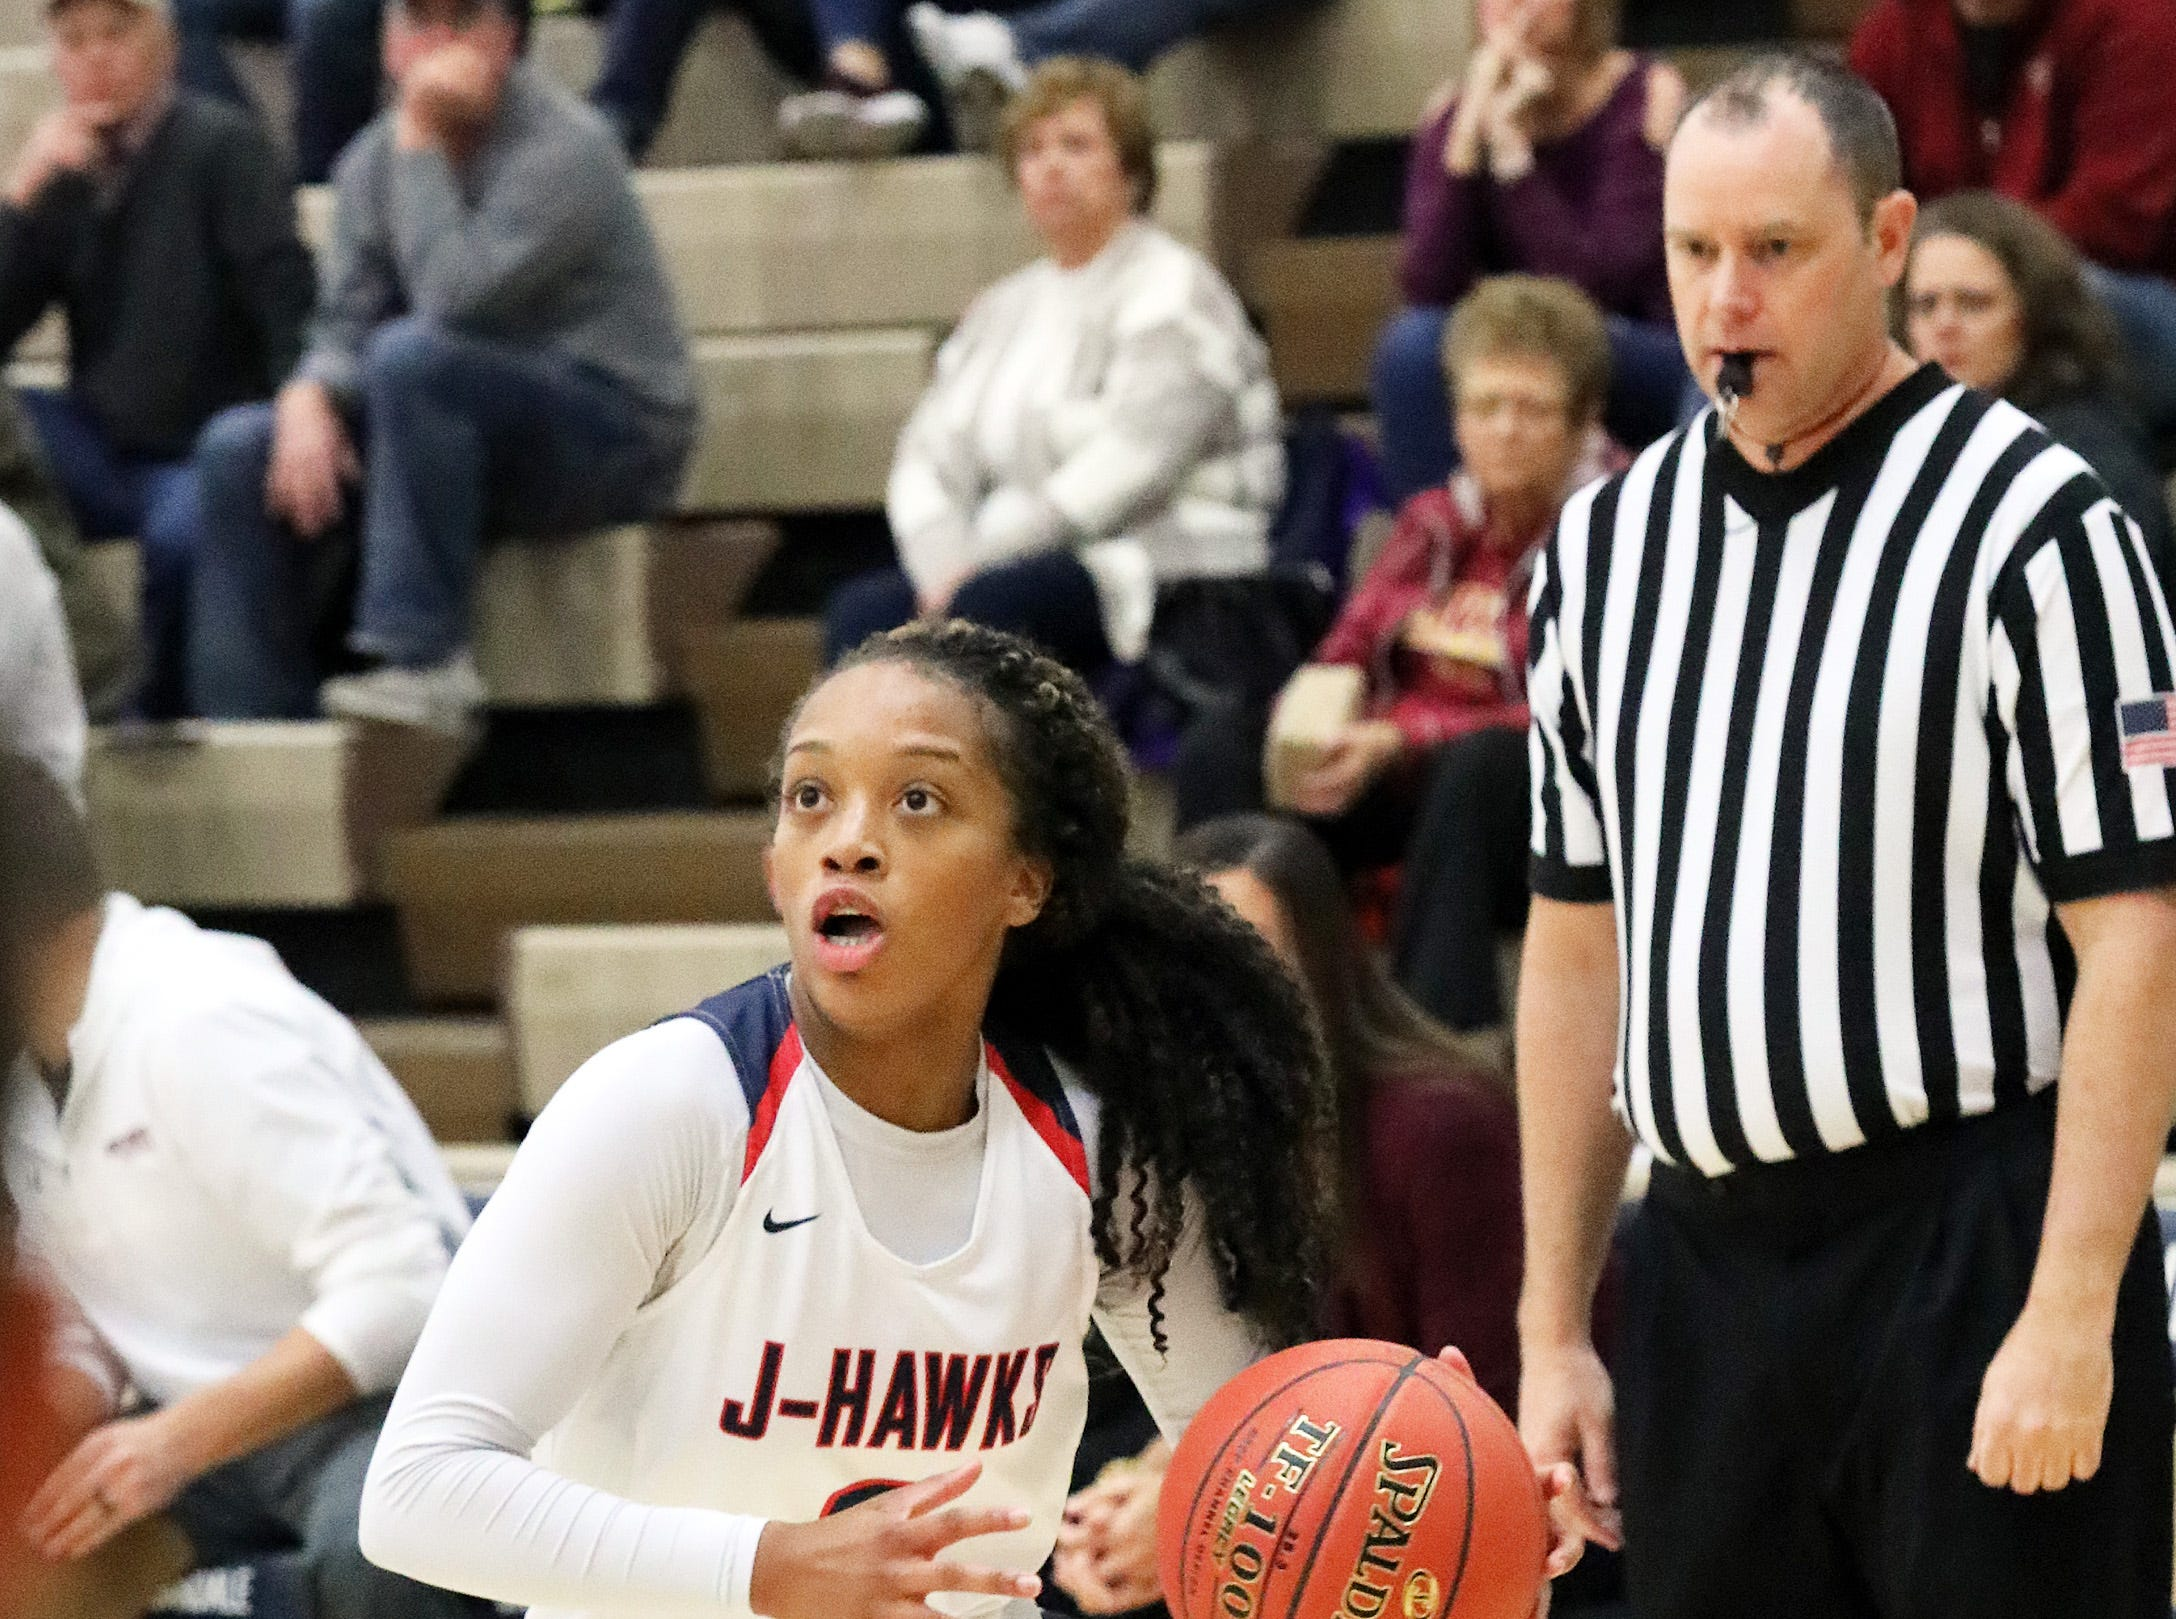 Urbandale senior guard Dee Dee Pryor drives towards the basket as the Ankeny Hawkettes compete against the Urbandale J-Hawks in high school basketball on Friday, Dec. 14, 2018 at Urbandale High School. Ankeny won 46 to 40.